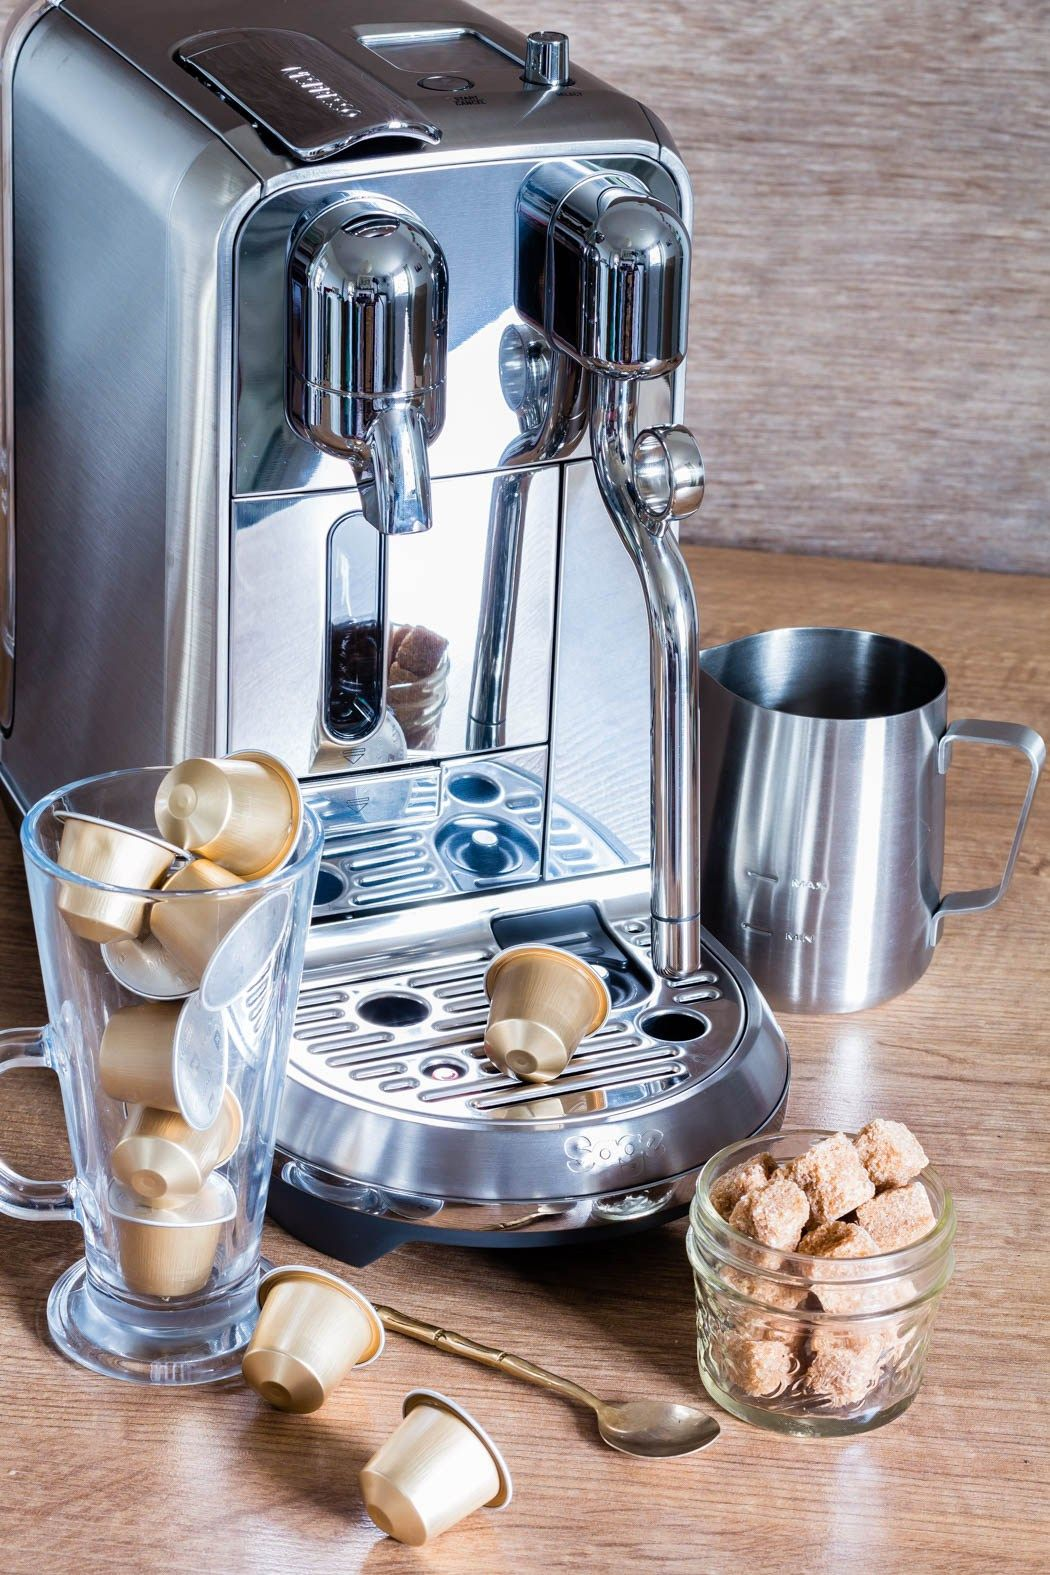 Nespresso sage Creatista Plus review Recipes From A